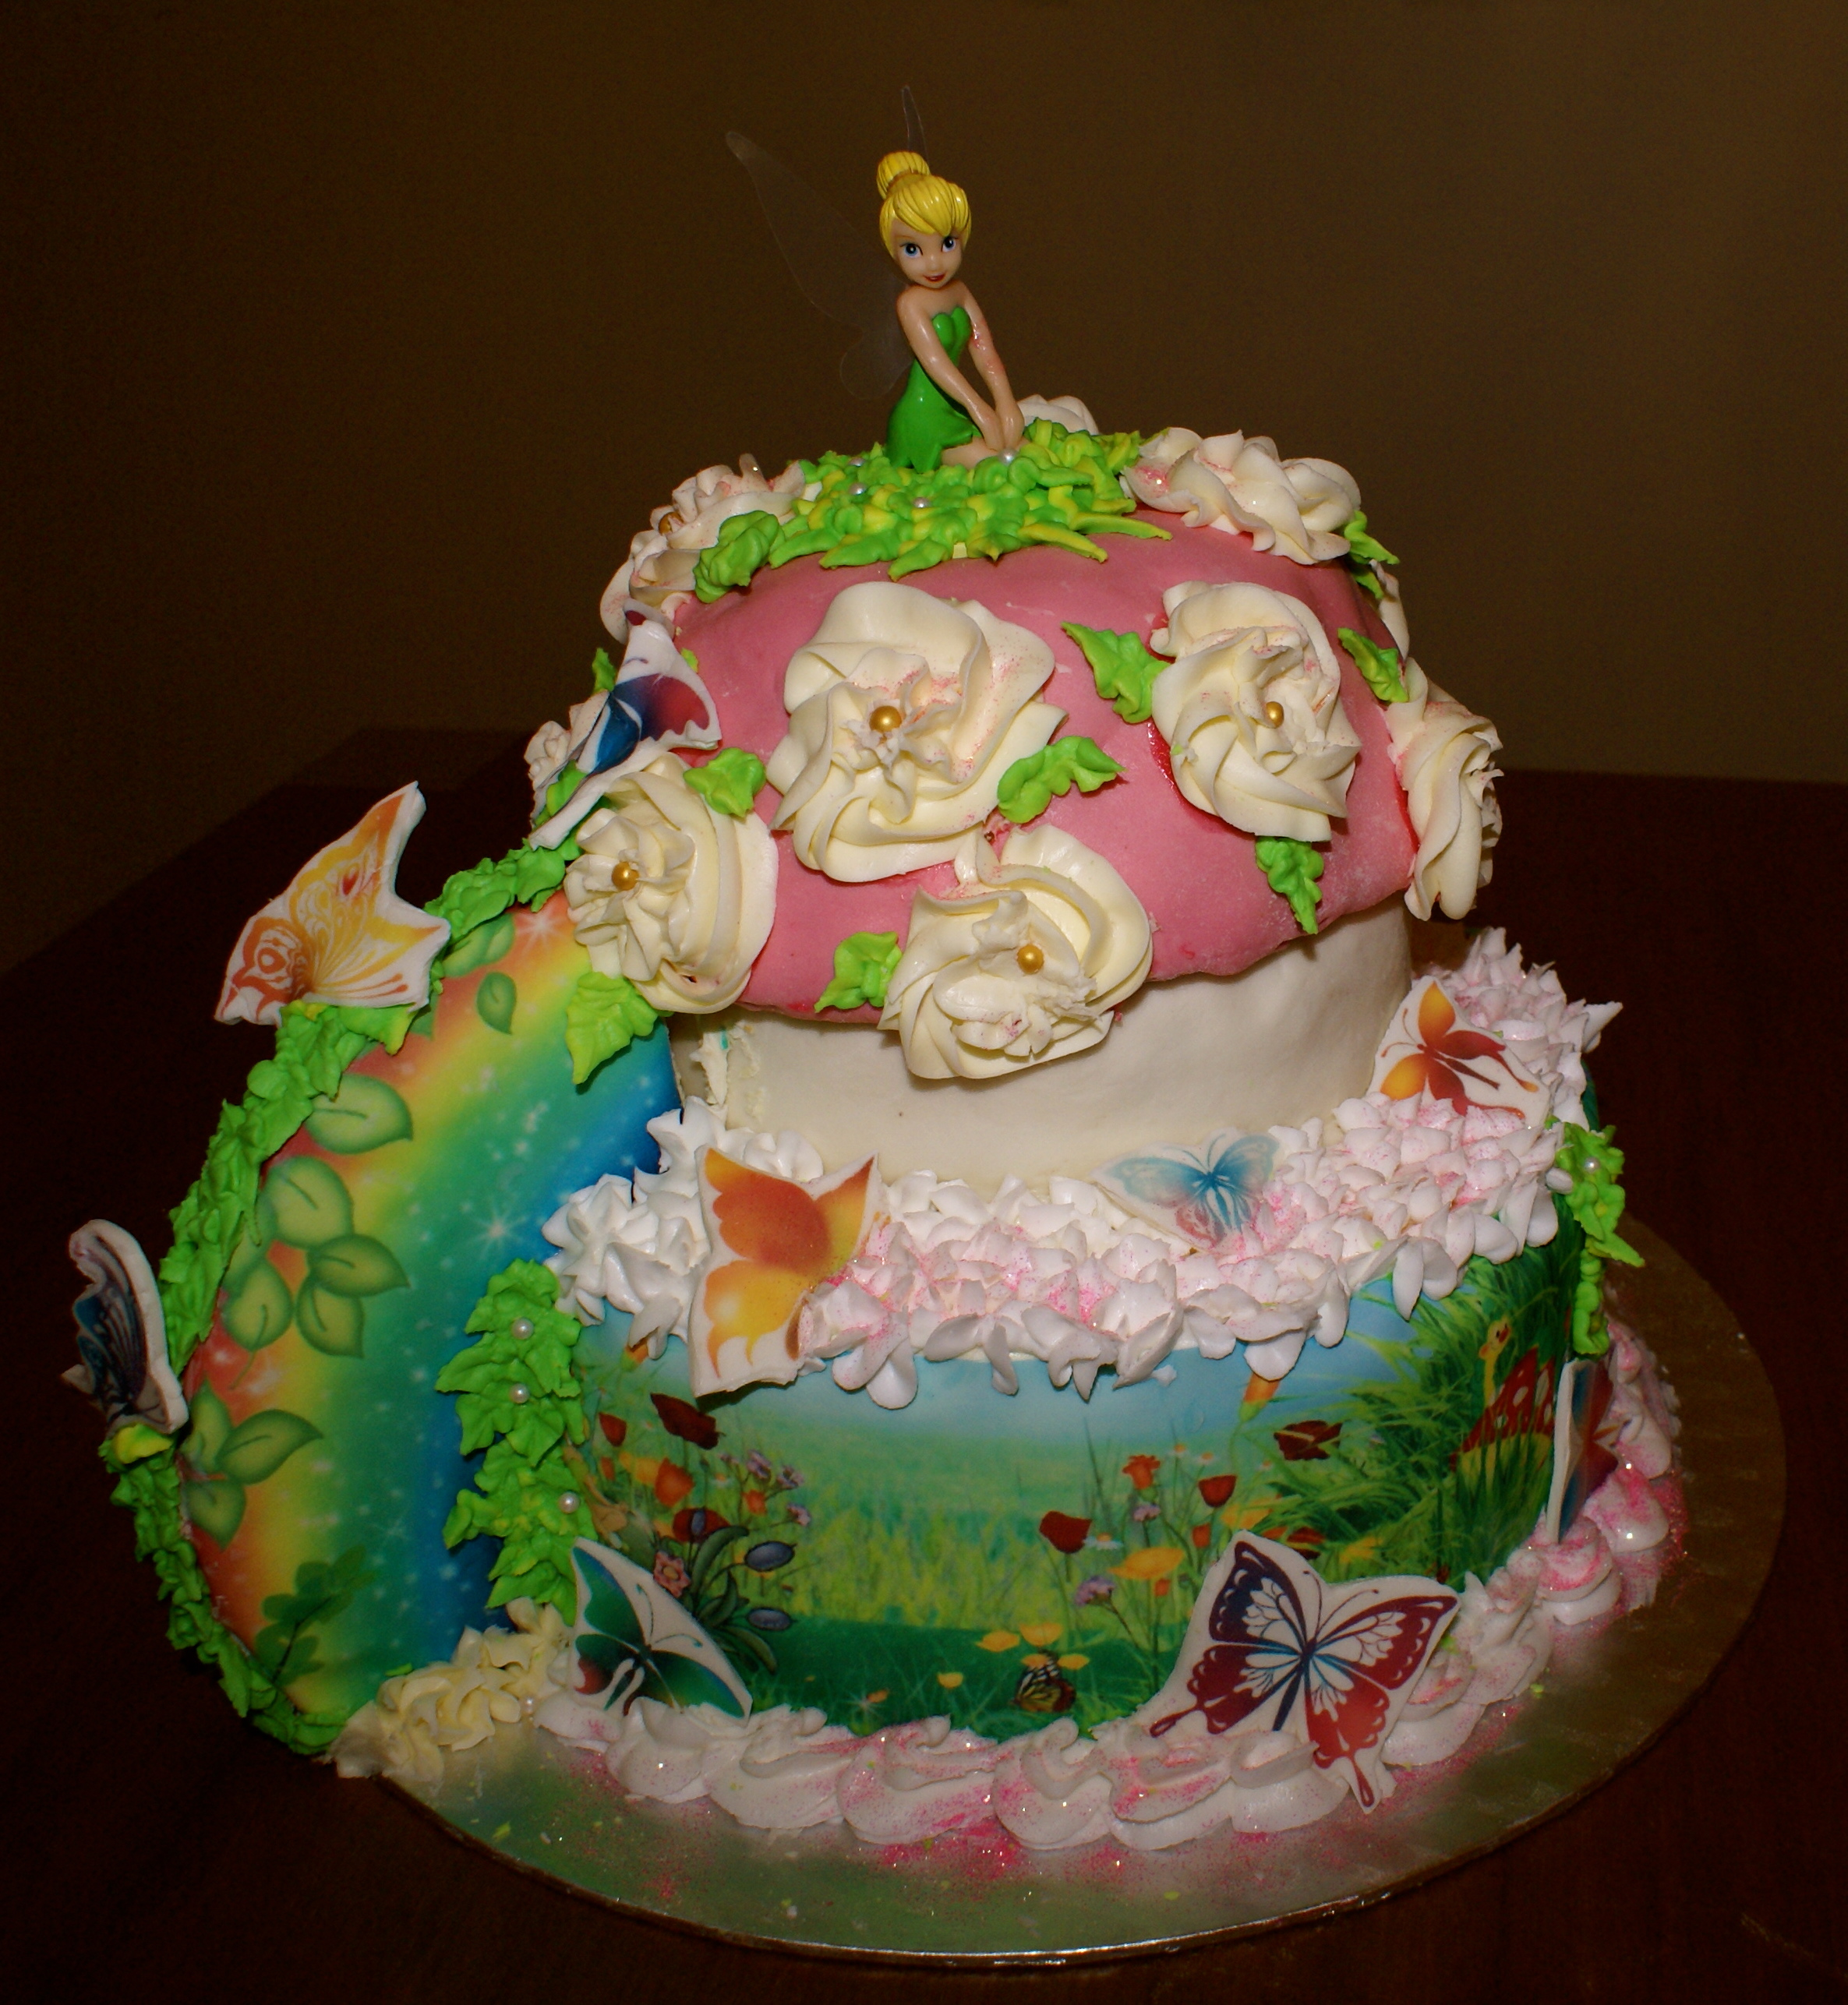 Tinkerbell Cakes For Kids Walmart Cakes For Kids Birthday